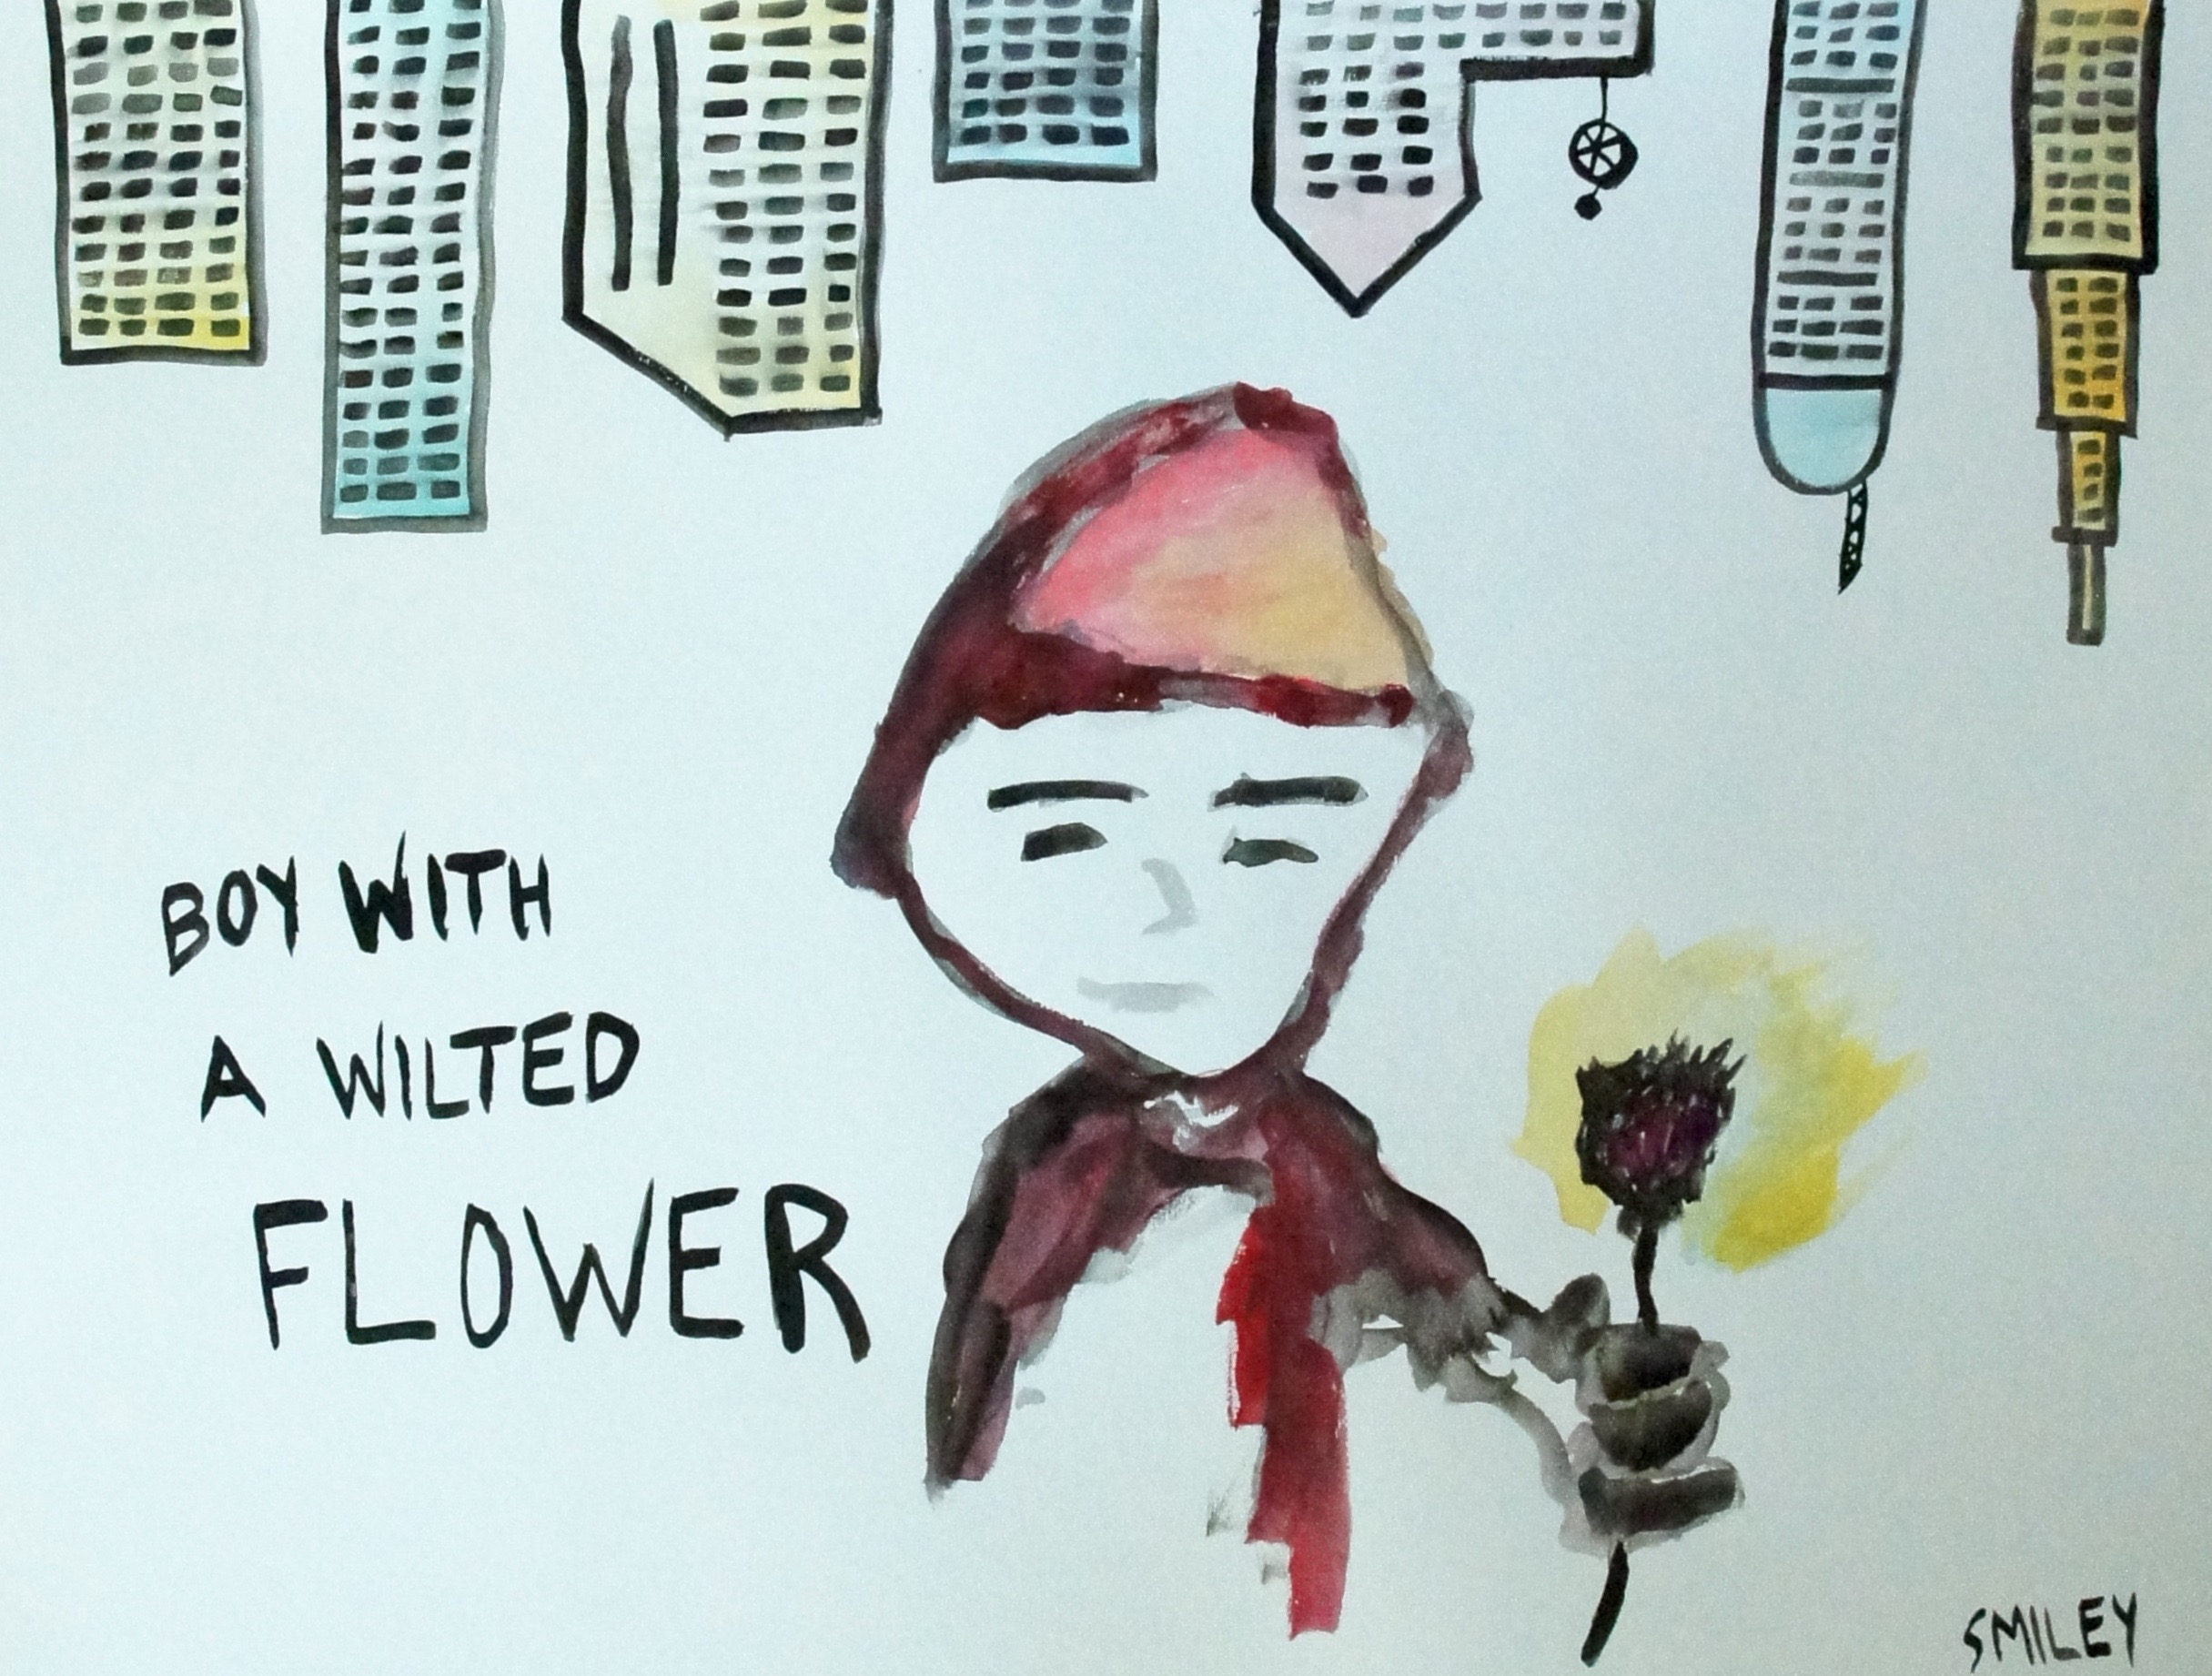 Boy with a Wilted Flower